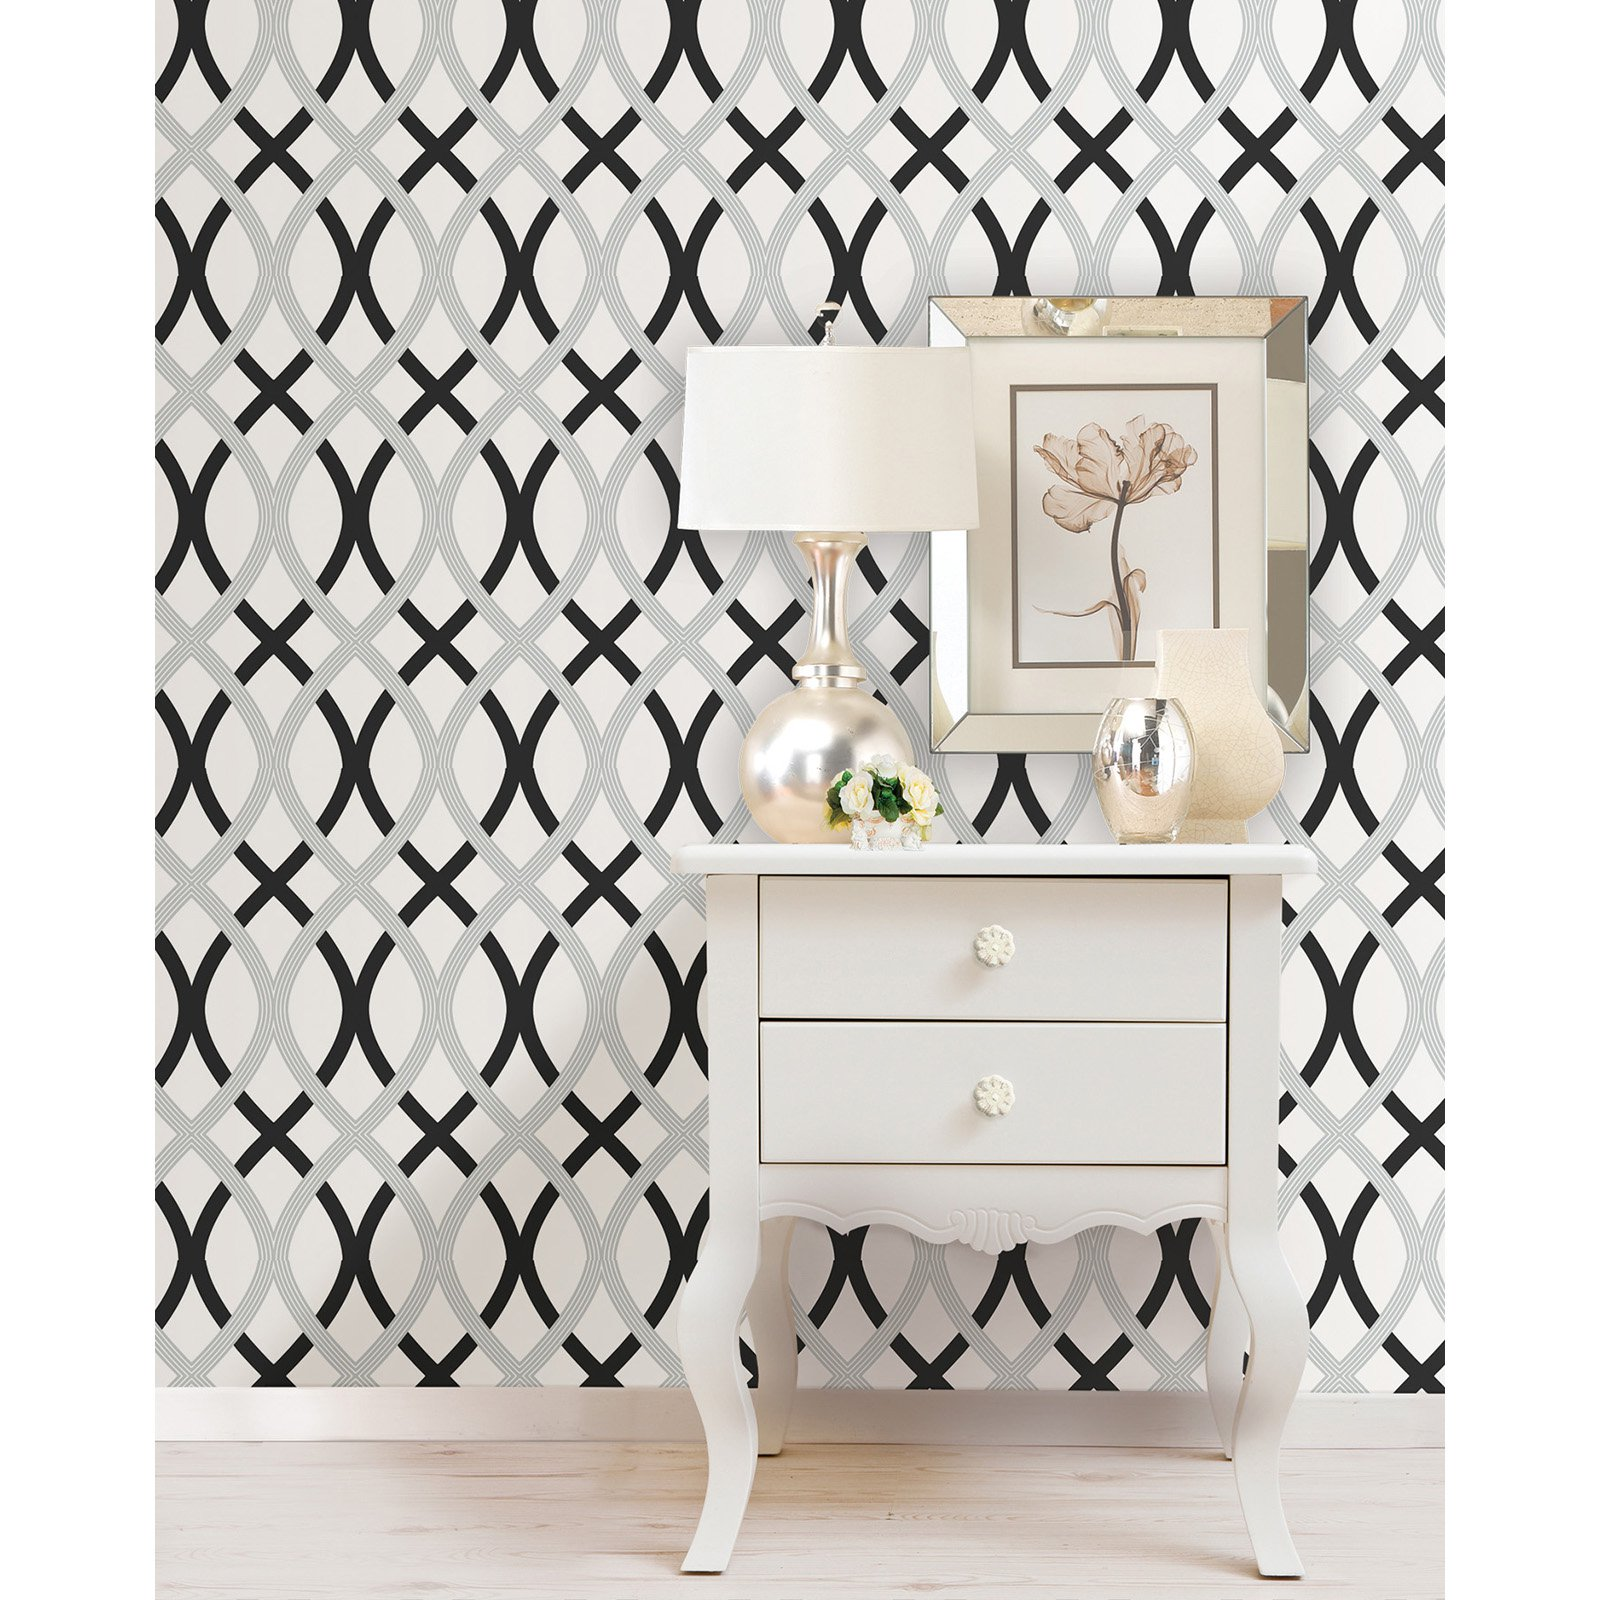 and Silver Lattice Peel and Stick Wallpaper   Wallpaper at Hayneedle 1600x1600